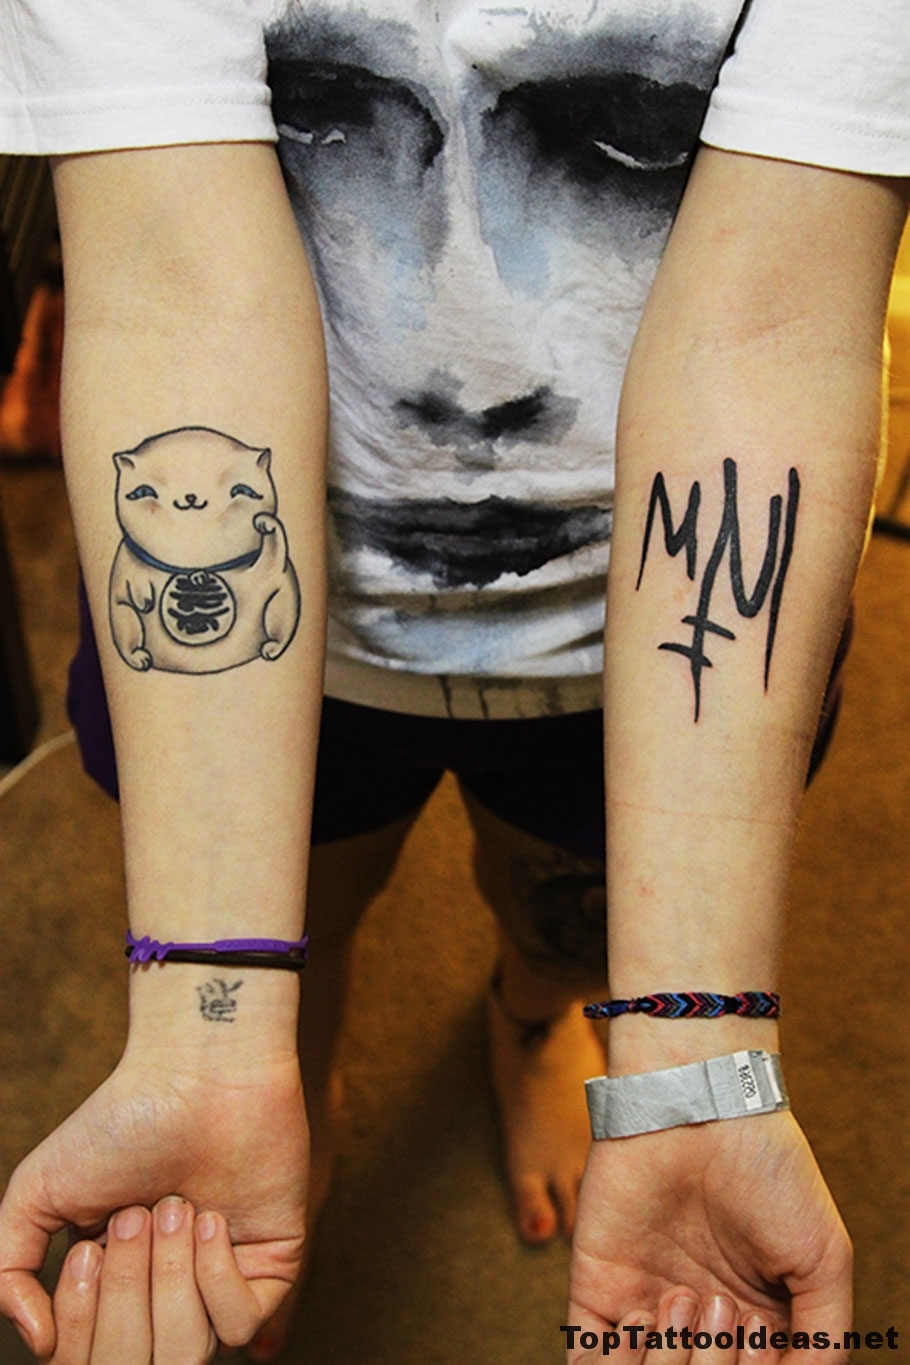 Cute Arm Tattoos Tattoo Idea